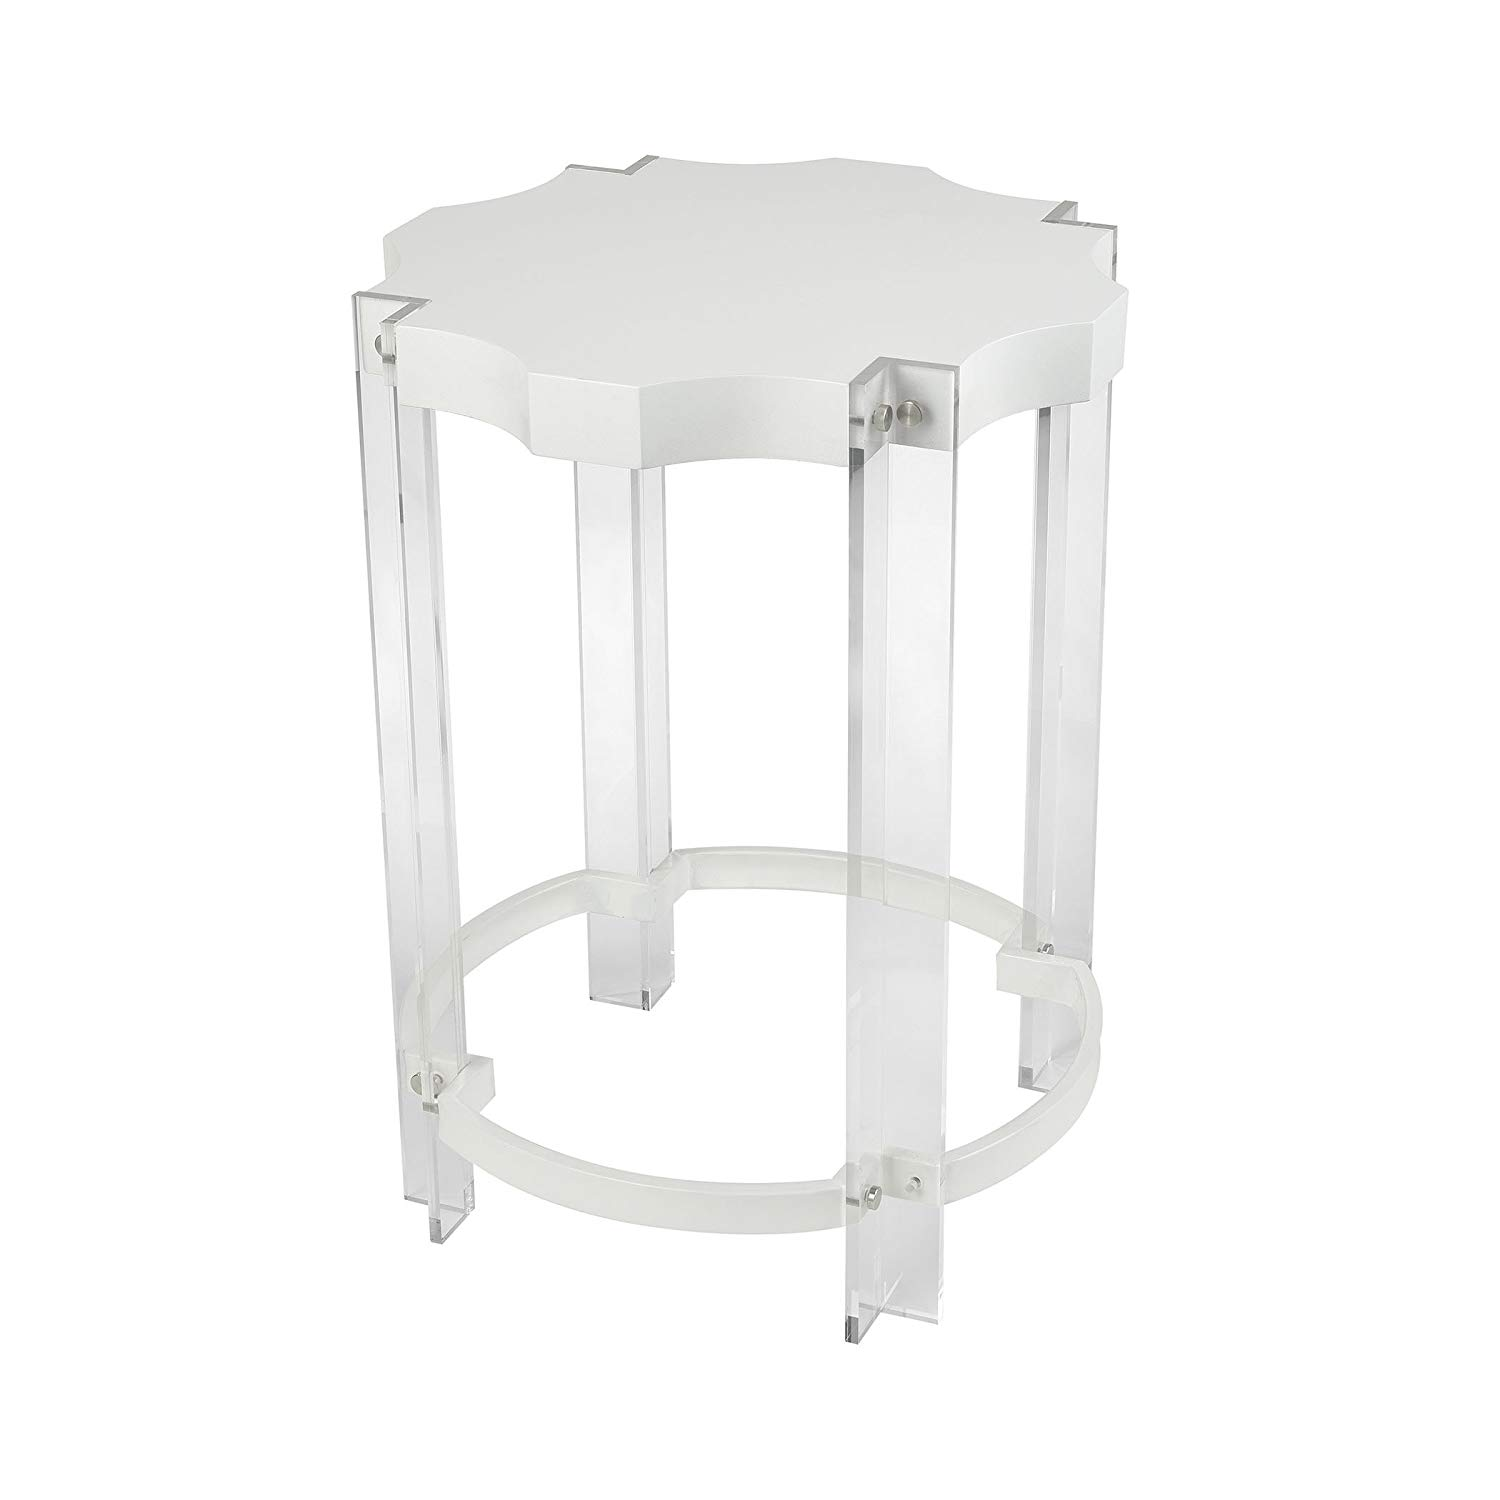 hamptons collection kamchatka accent table kitchen dining winsome wood cassie with glass top cappuccino finish light blue end sasha round small console cabinet cordless battery